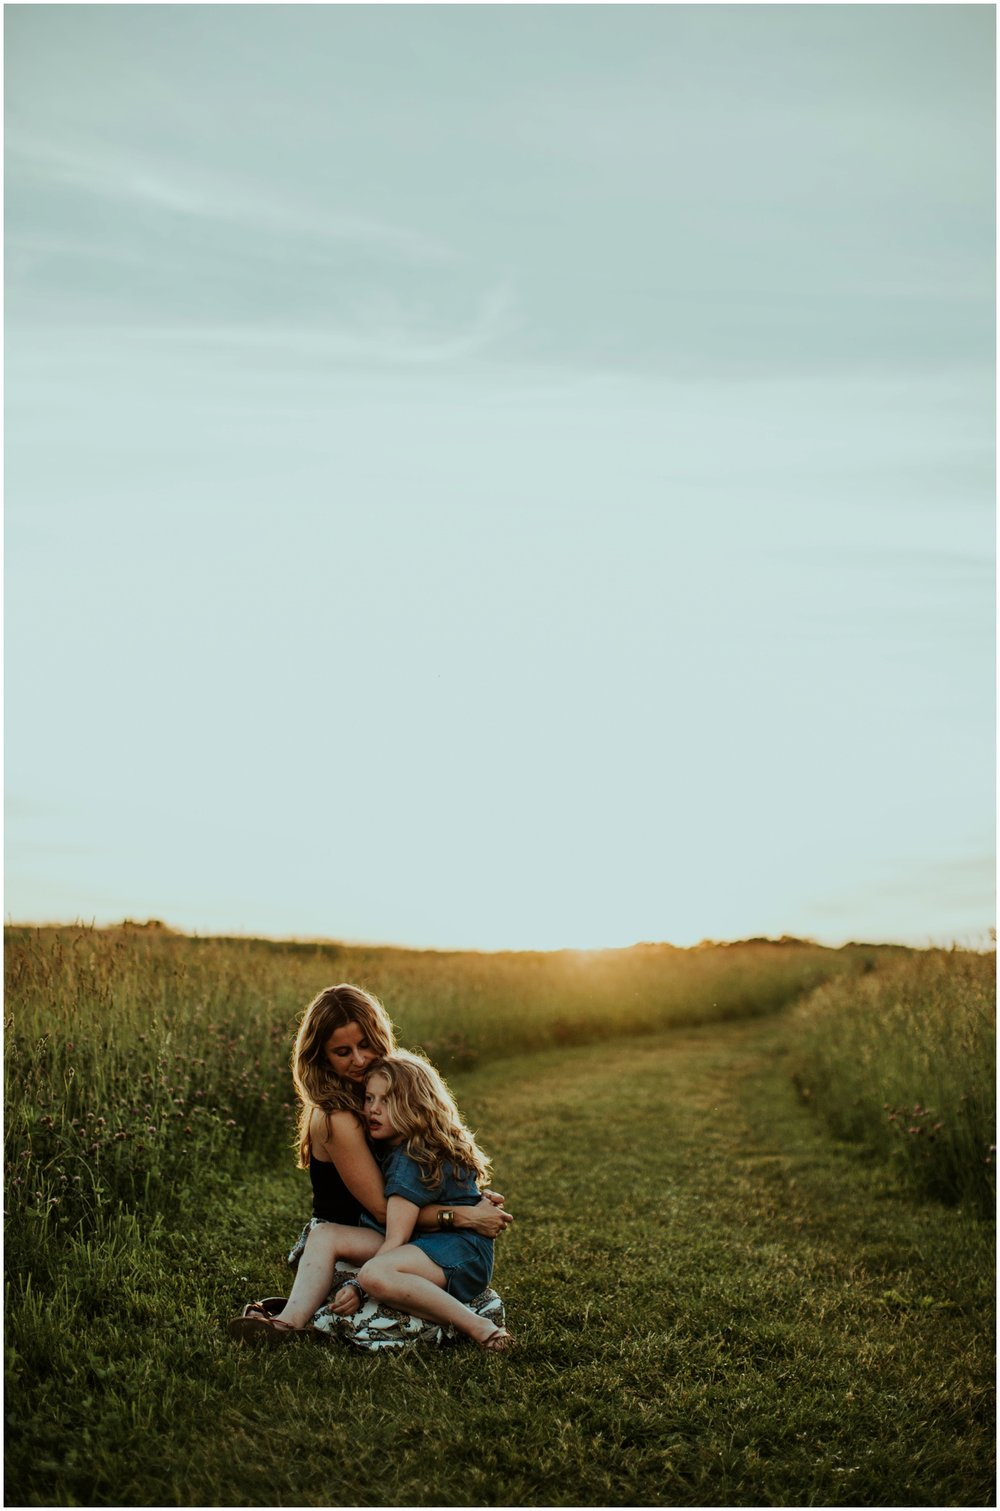 Milwaukee, Wisconsin Family Photographer | Mama and Me Session | Mom and daughter sitting in field.